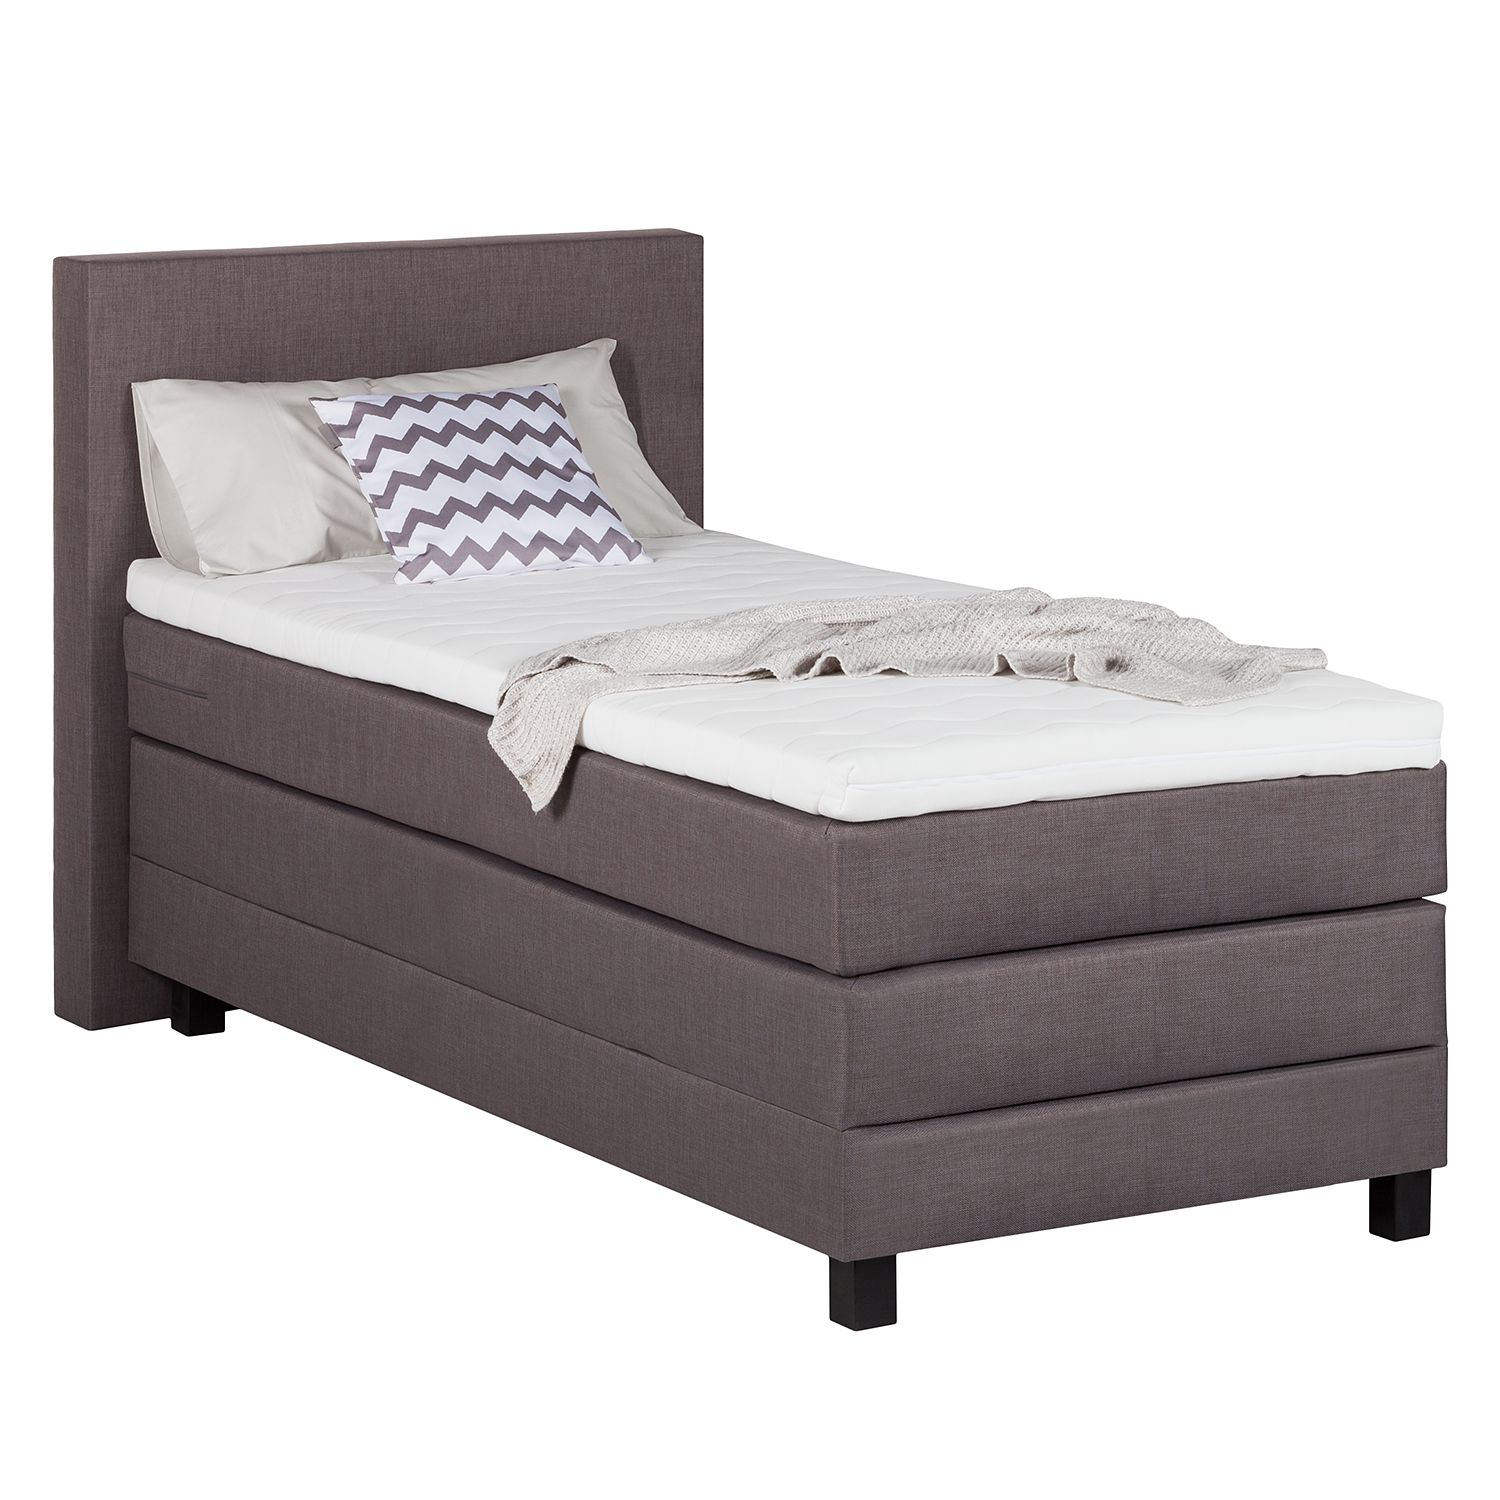 Boxspringbett Splendid Night II - 100 x 200cm - H3 ab 80 kg - Anthrazit, Grand Selection